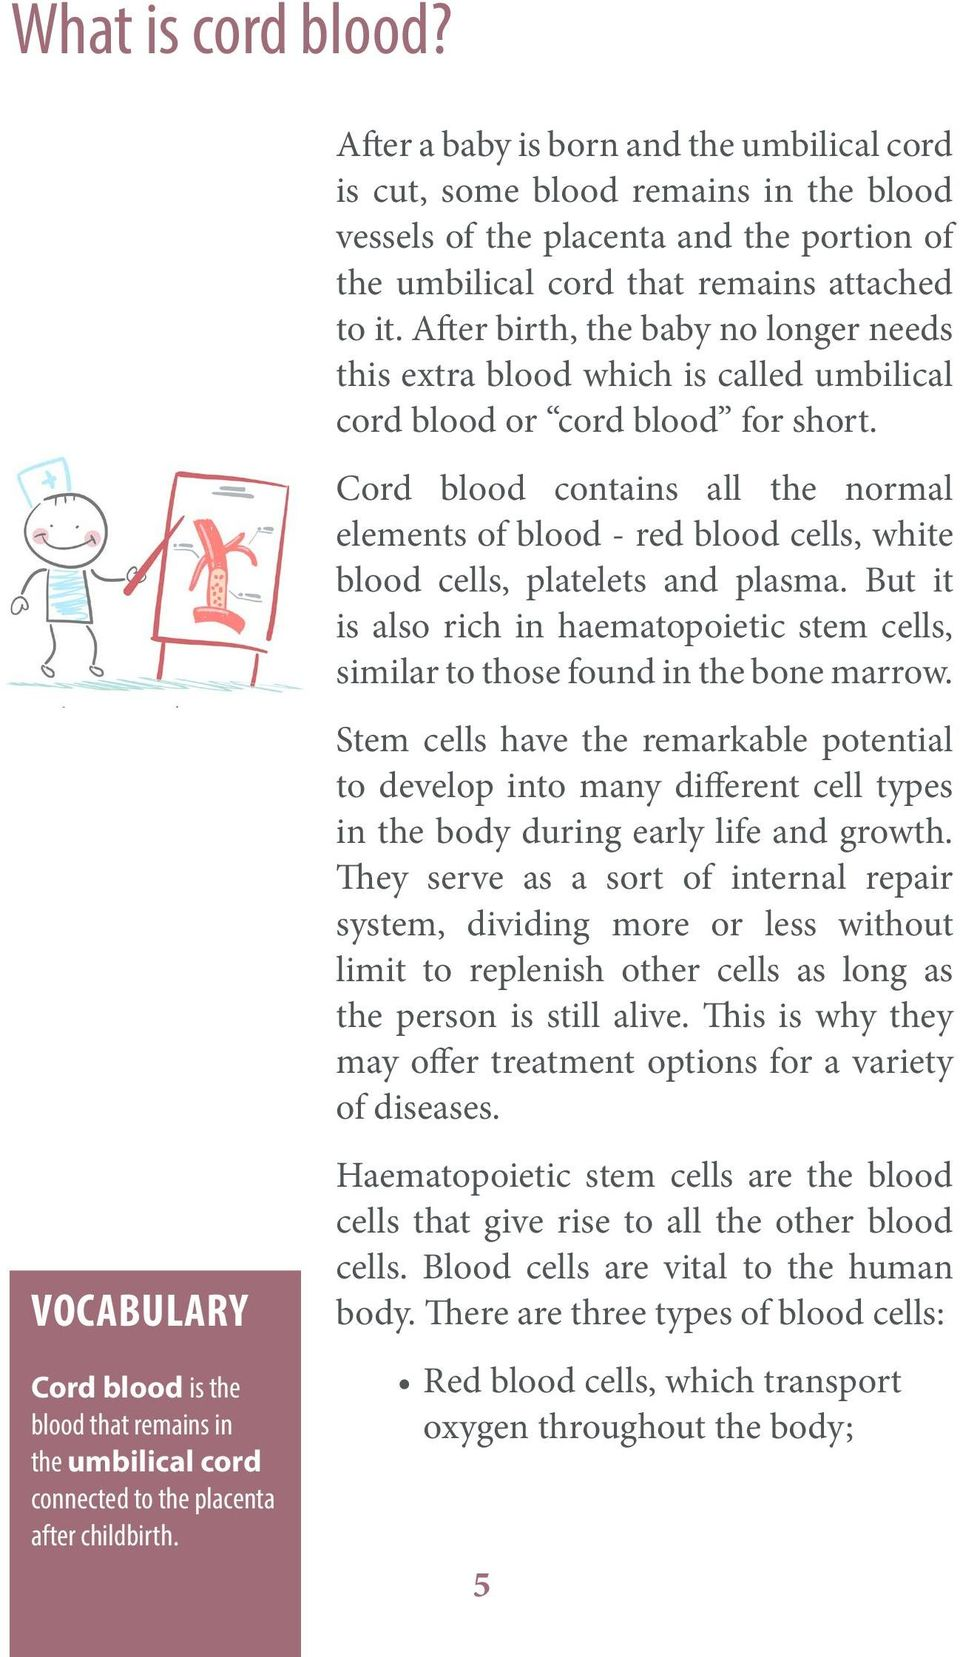 Cord blood contains all the normal elements of blood - red blood cells, white blood cells, platelets and plasma.